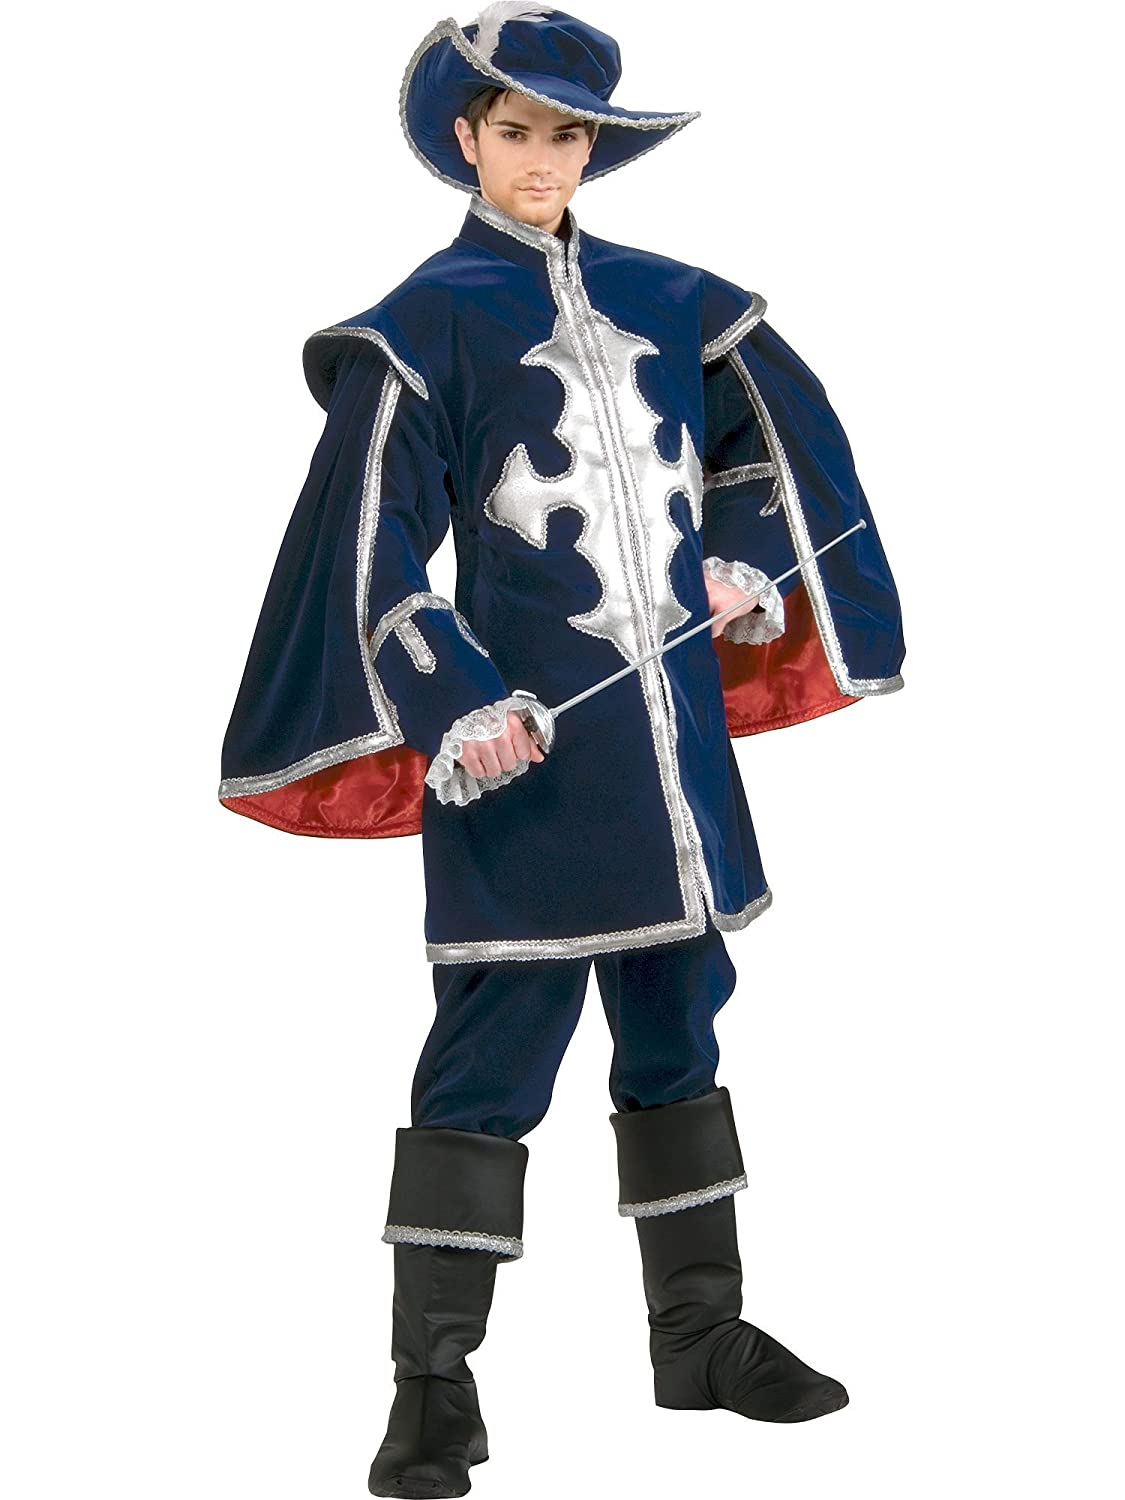 a316ae87a95 Men s Deluxe Grand Heritage Blue Velvet Musketeer Costume -  DeluxeAdultCostumes.com